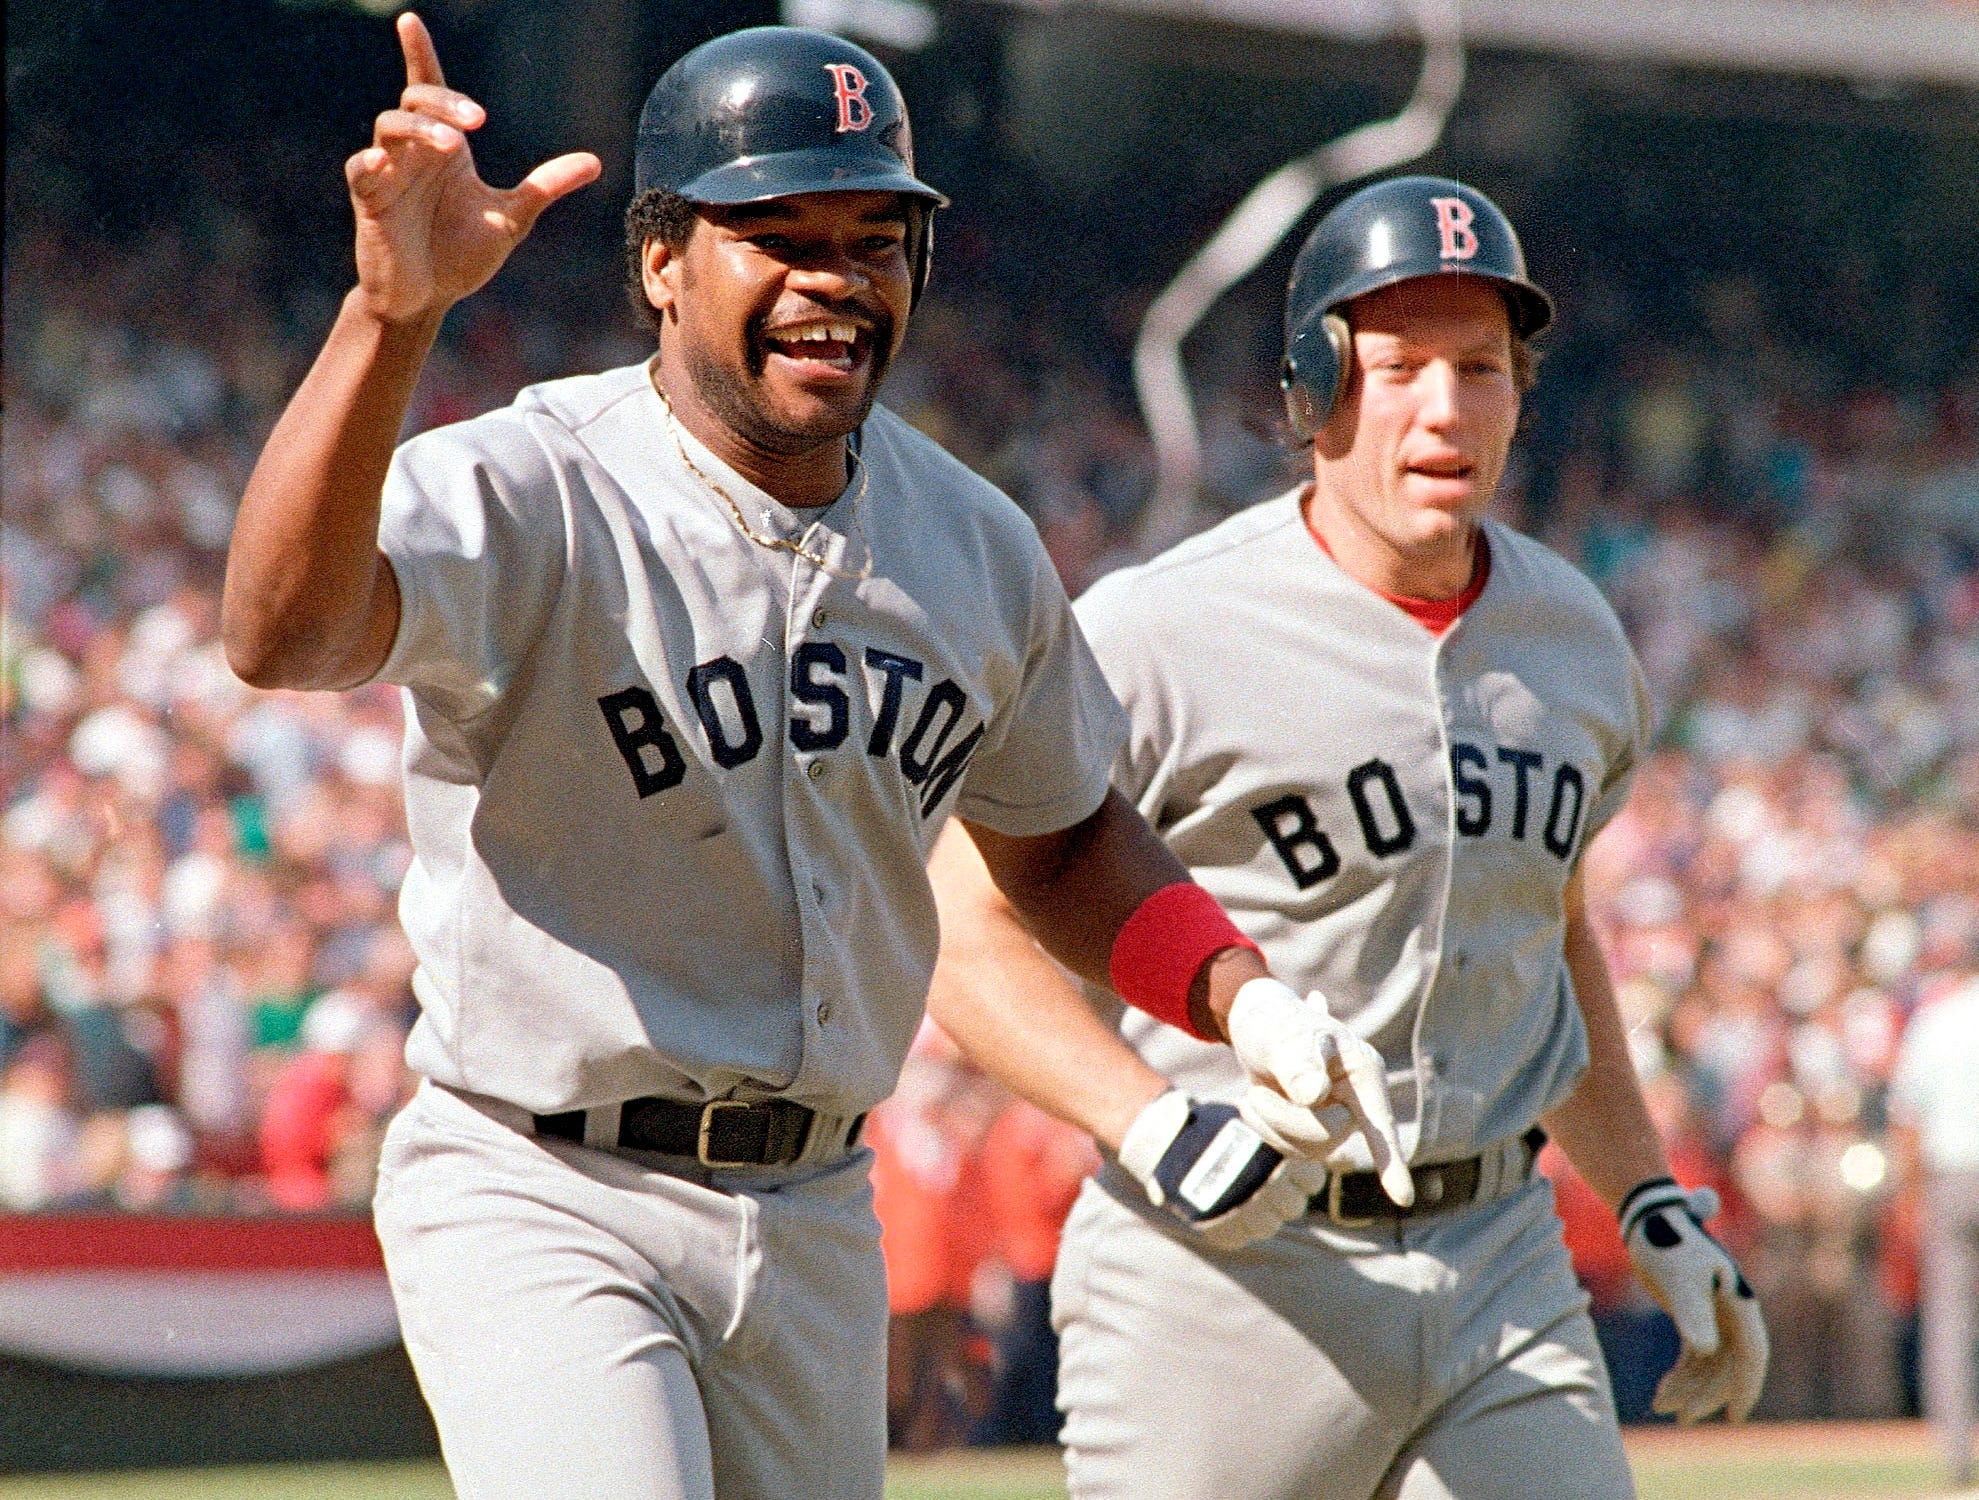 1986 NLCS Game 5: The Angels were one strike away from reaching the World Series, but Boston's Dave Henderson homered in the ninth inning to put the Red Sox ahead. They would win in 11 innings and come back to win the series.